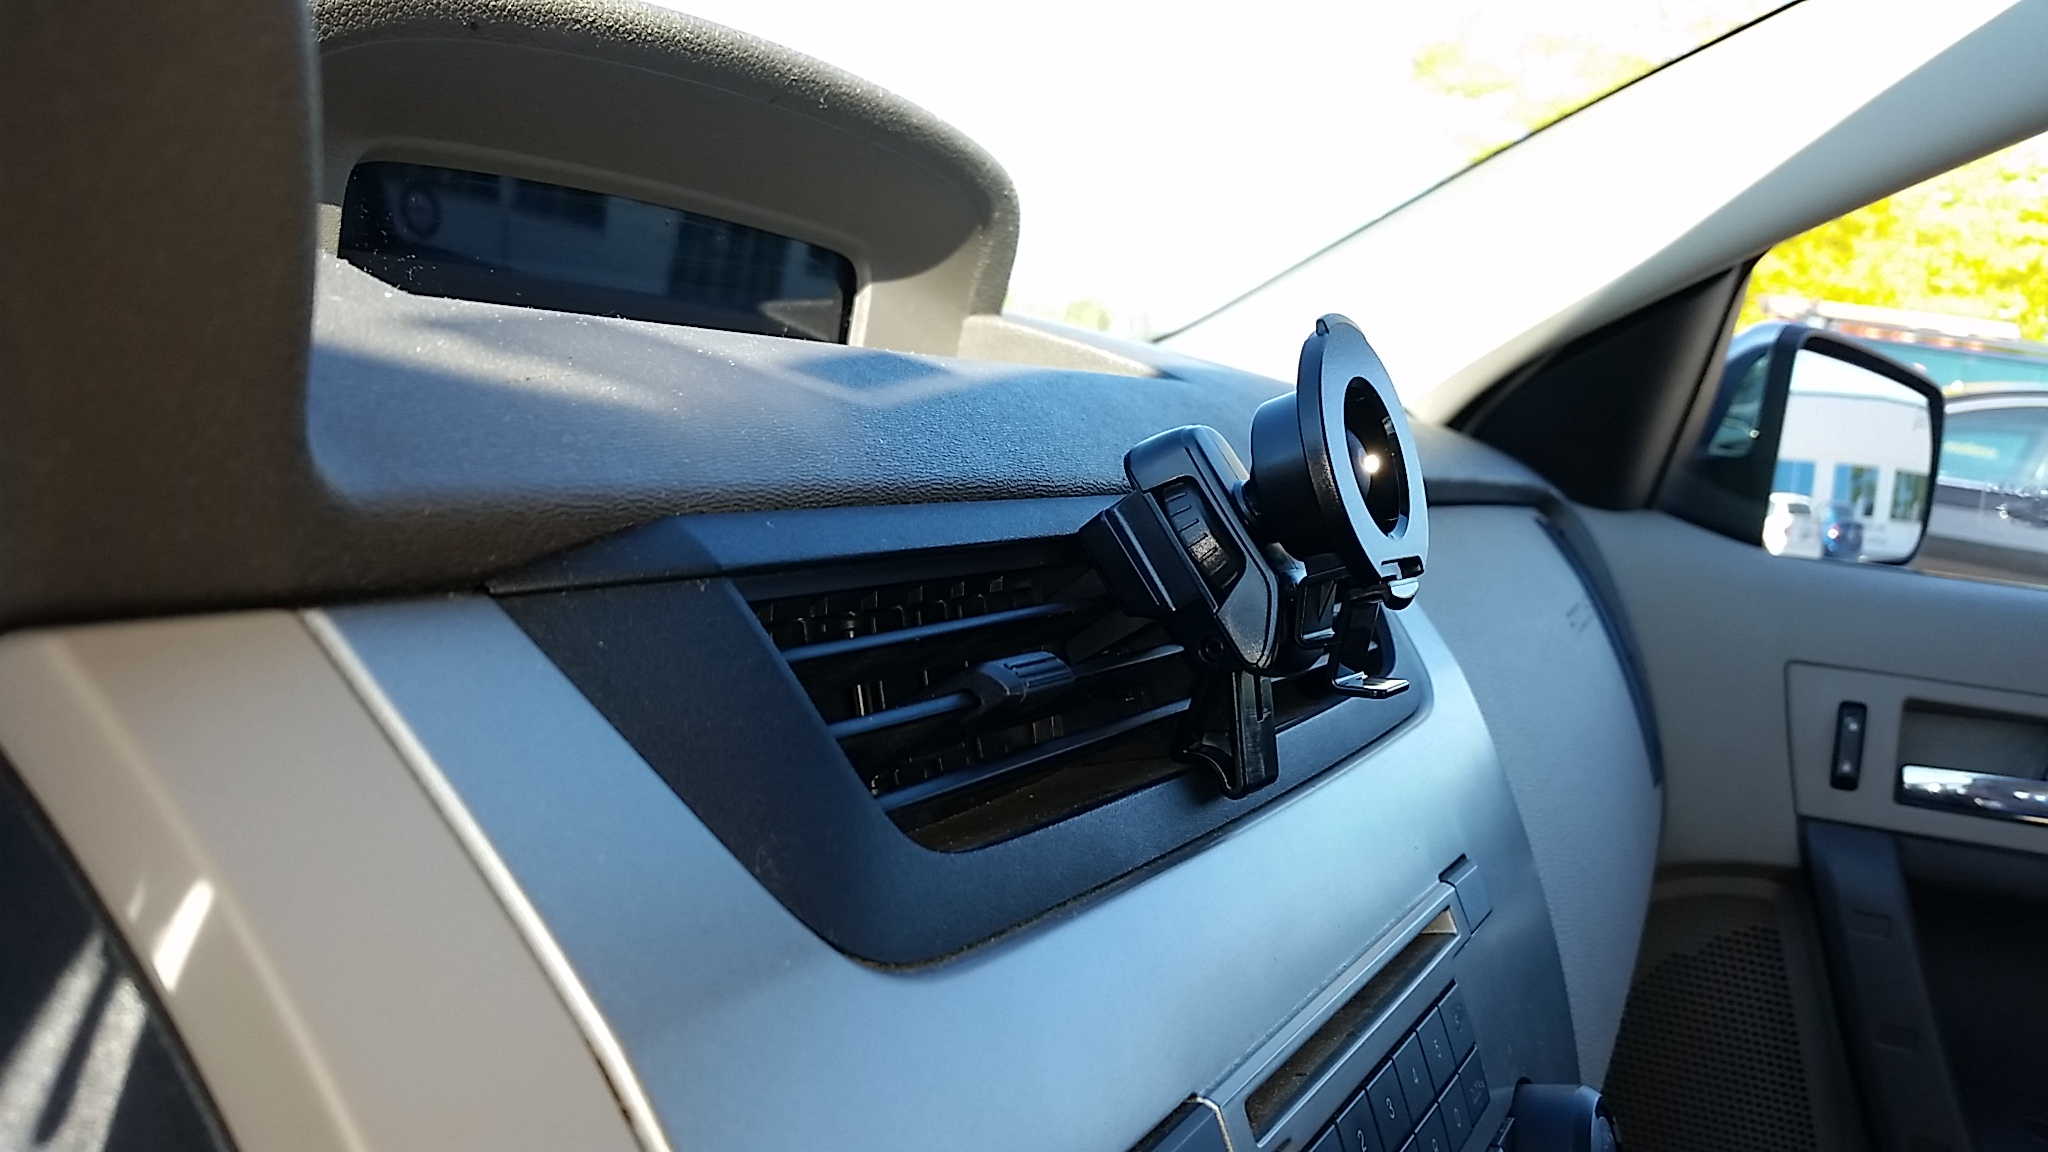 Garmin air vent mount gallery article - Support gps garmin grille ventilation ...